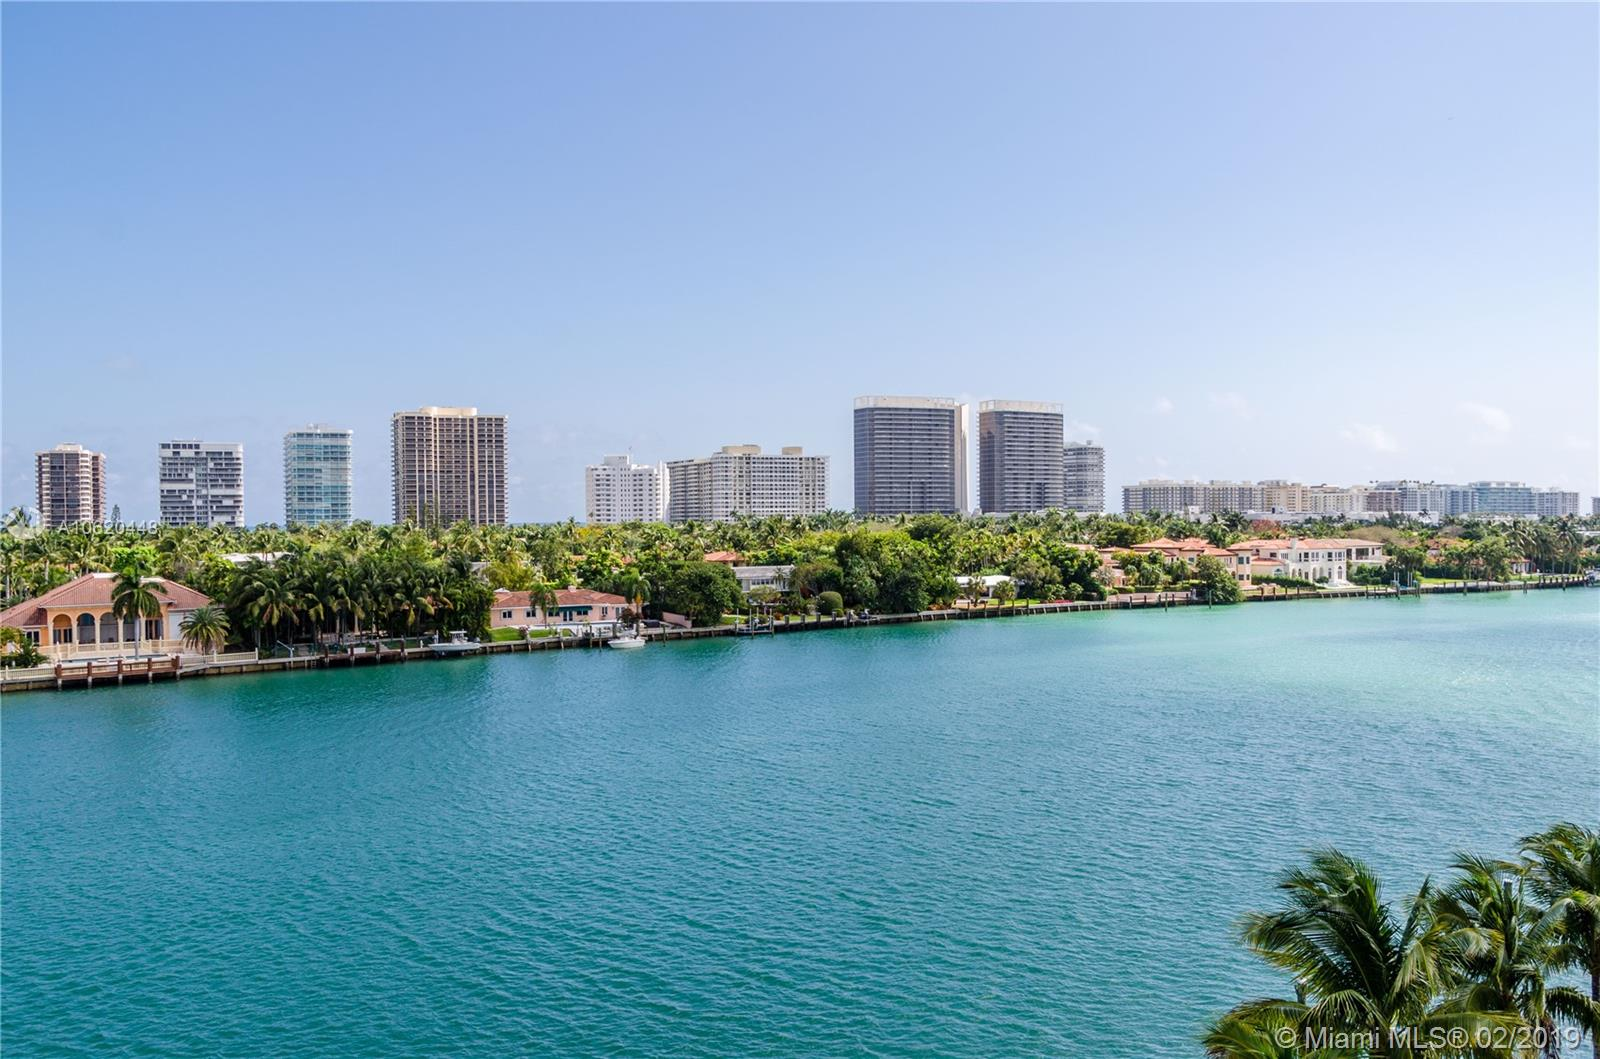 GREAT EAST UNOBSTRUCTED WATER VIEWS OF INTRACOASTAL AND BAL HARBOUR, OLETA PARK AND THE BEACHES SKYLINE. NEW 3 BD 2 1/2 BATH IN BAY HARBOR ISLANDS CONDO. SEMI PRIVATE ELEVATOR TO YOUR UNIT. TOP OF THE LINE APPLIANCES AND BATHROOM FINISHES. WASHER AND DRYER IN THE UNIT. WOOD FLOORS. HIGH CEILINGS. EXERCISE ROOM ON THE ROOFTOP WITH AN INFINITY POOL WITH 360 DEGREE PANORAMIC VIEWS. 2 COVERED PARKING SPACES. THREE STORY HIGH LOBBY ENTRANCE. NEAR BAY HARBOR, SURFSIDE AND BAL HARBOUR SHOPS AND BEACHES.